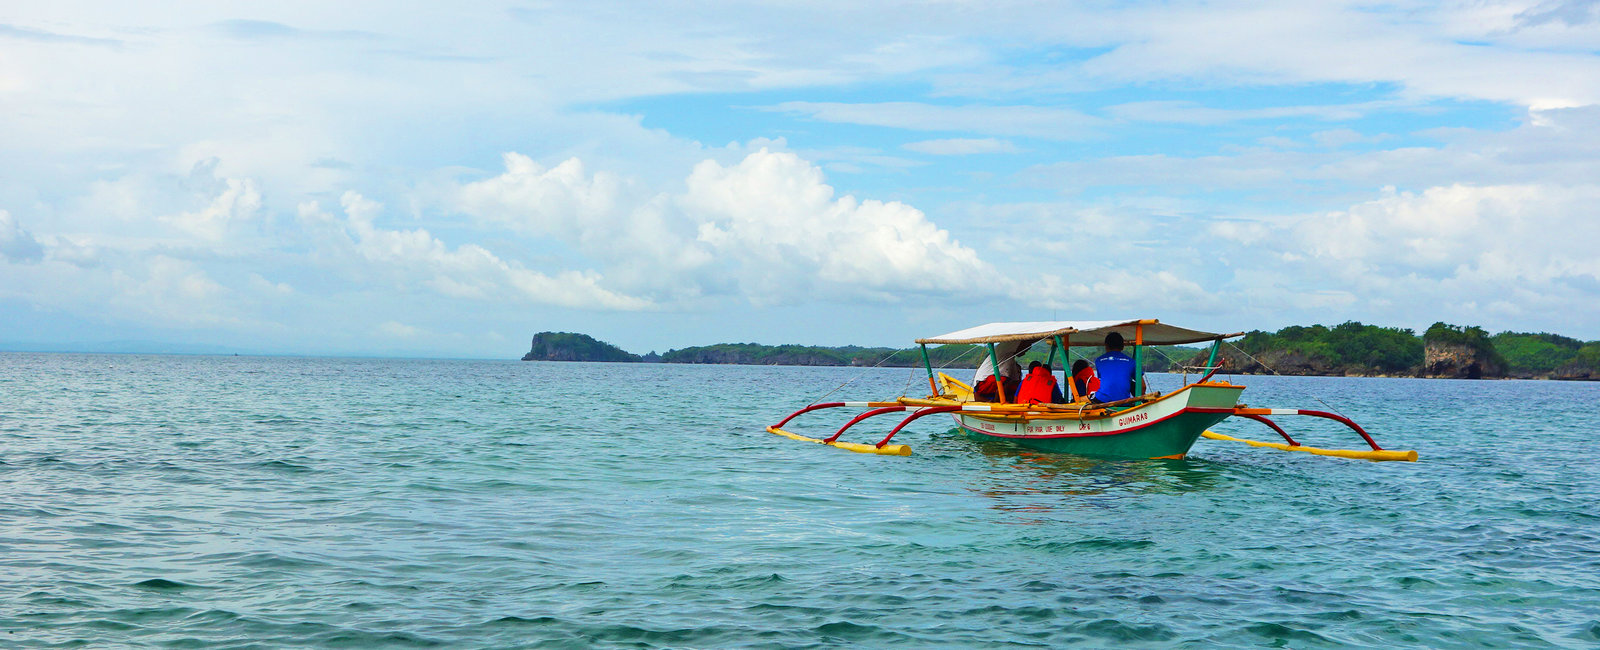 Jessica Norman - Pharmacy Electives in Iloilo, the Philippines